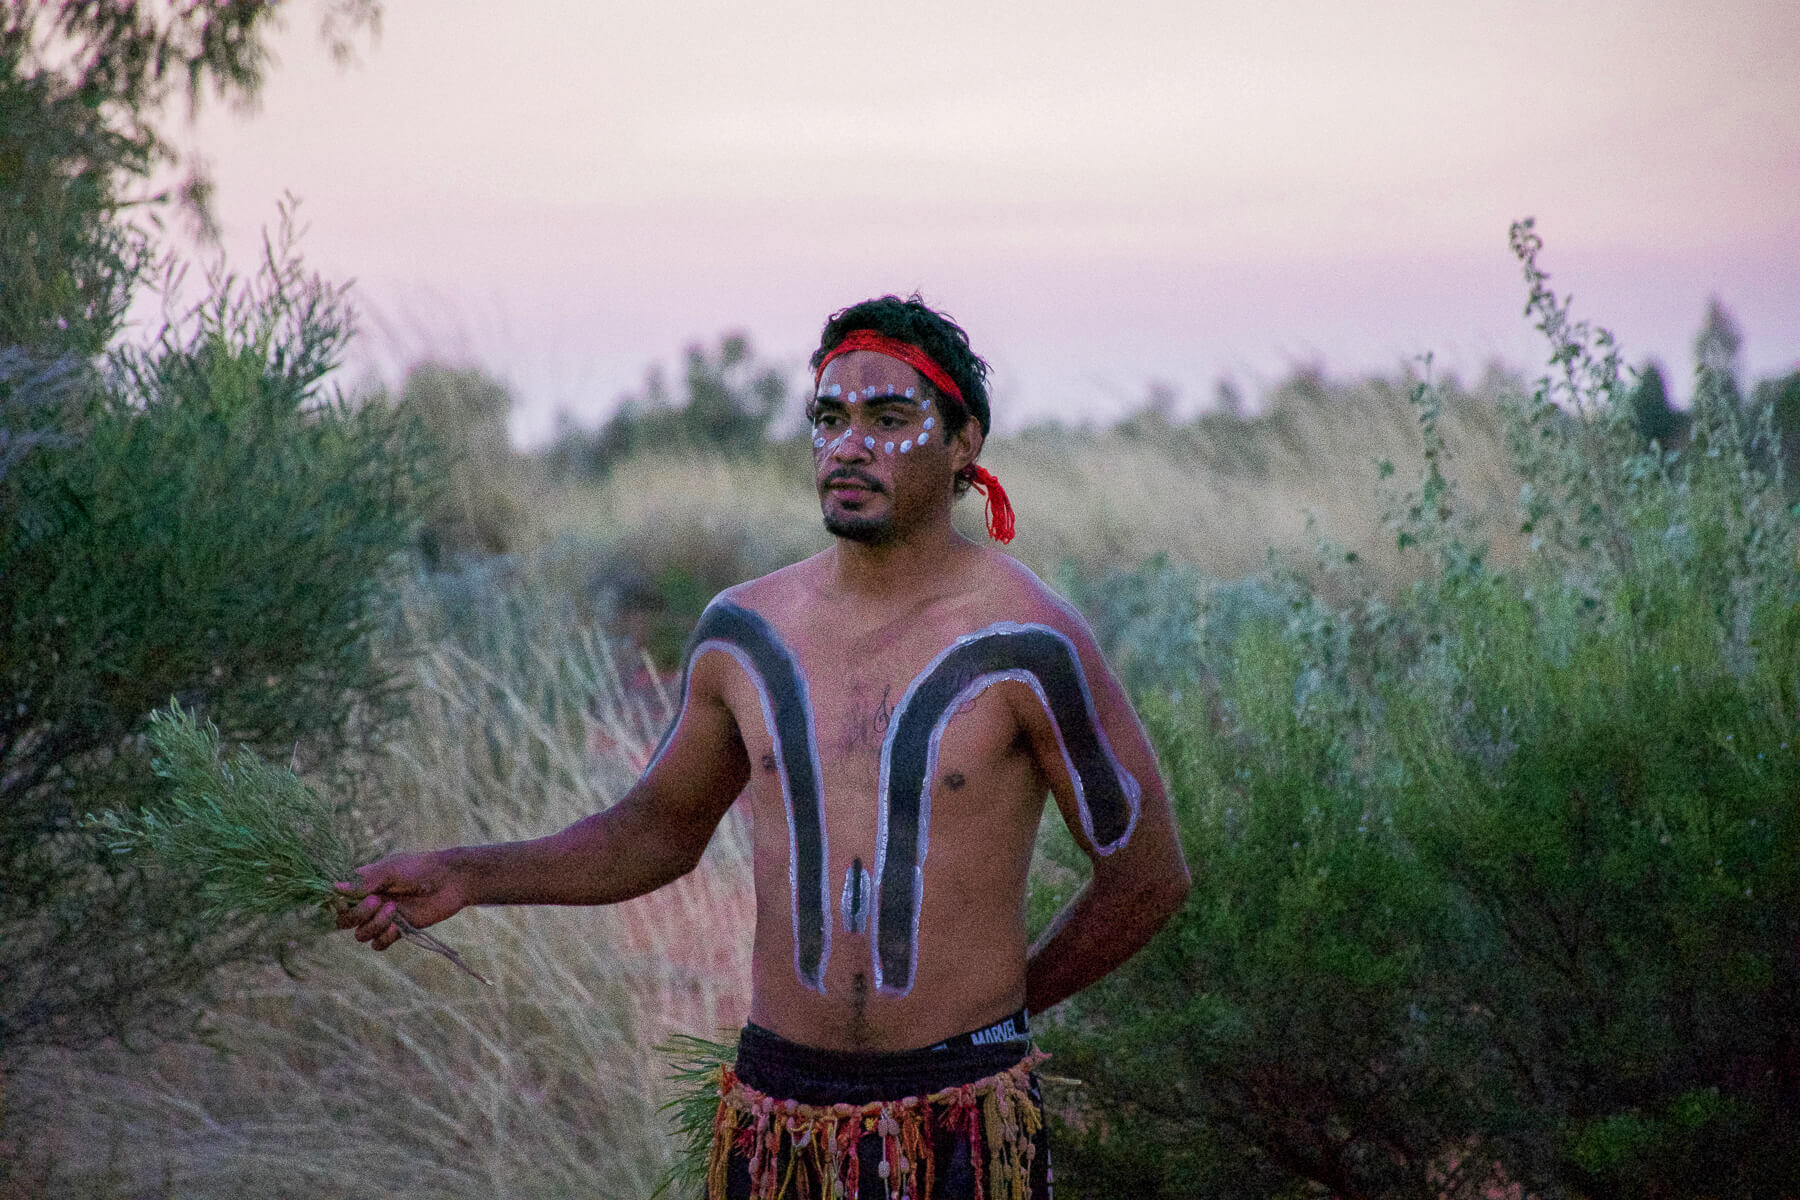 Indigenous man with painted face and body holding a grass shrub